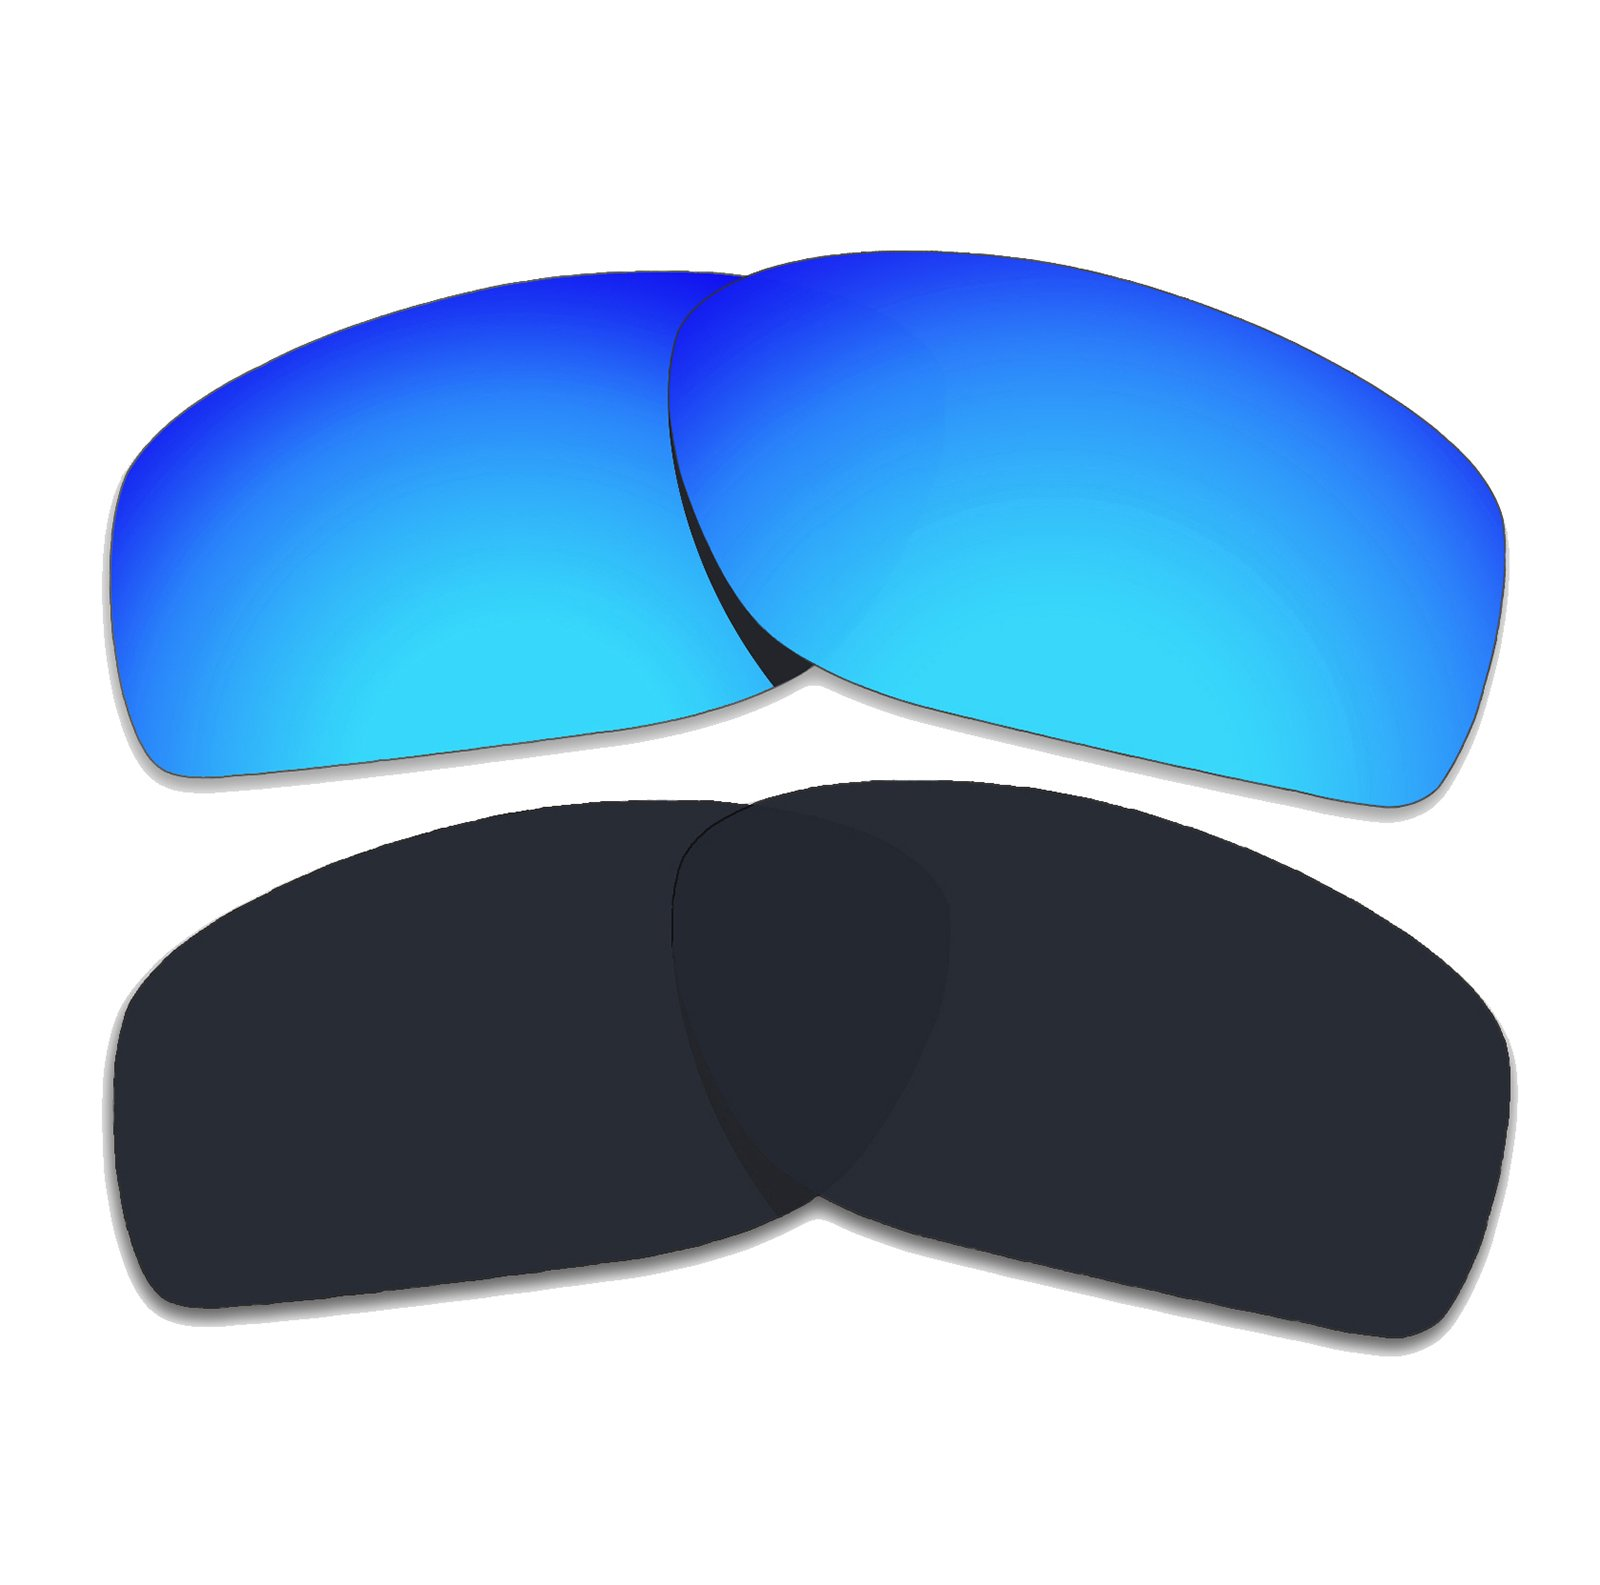 60a29a1a255 COLOR STAY LENSES 2.0mm Thickness Polarized Replacement Lenses for Oakley  Cohort OO9301 Sunglasses Titanium Mirror Coatings